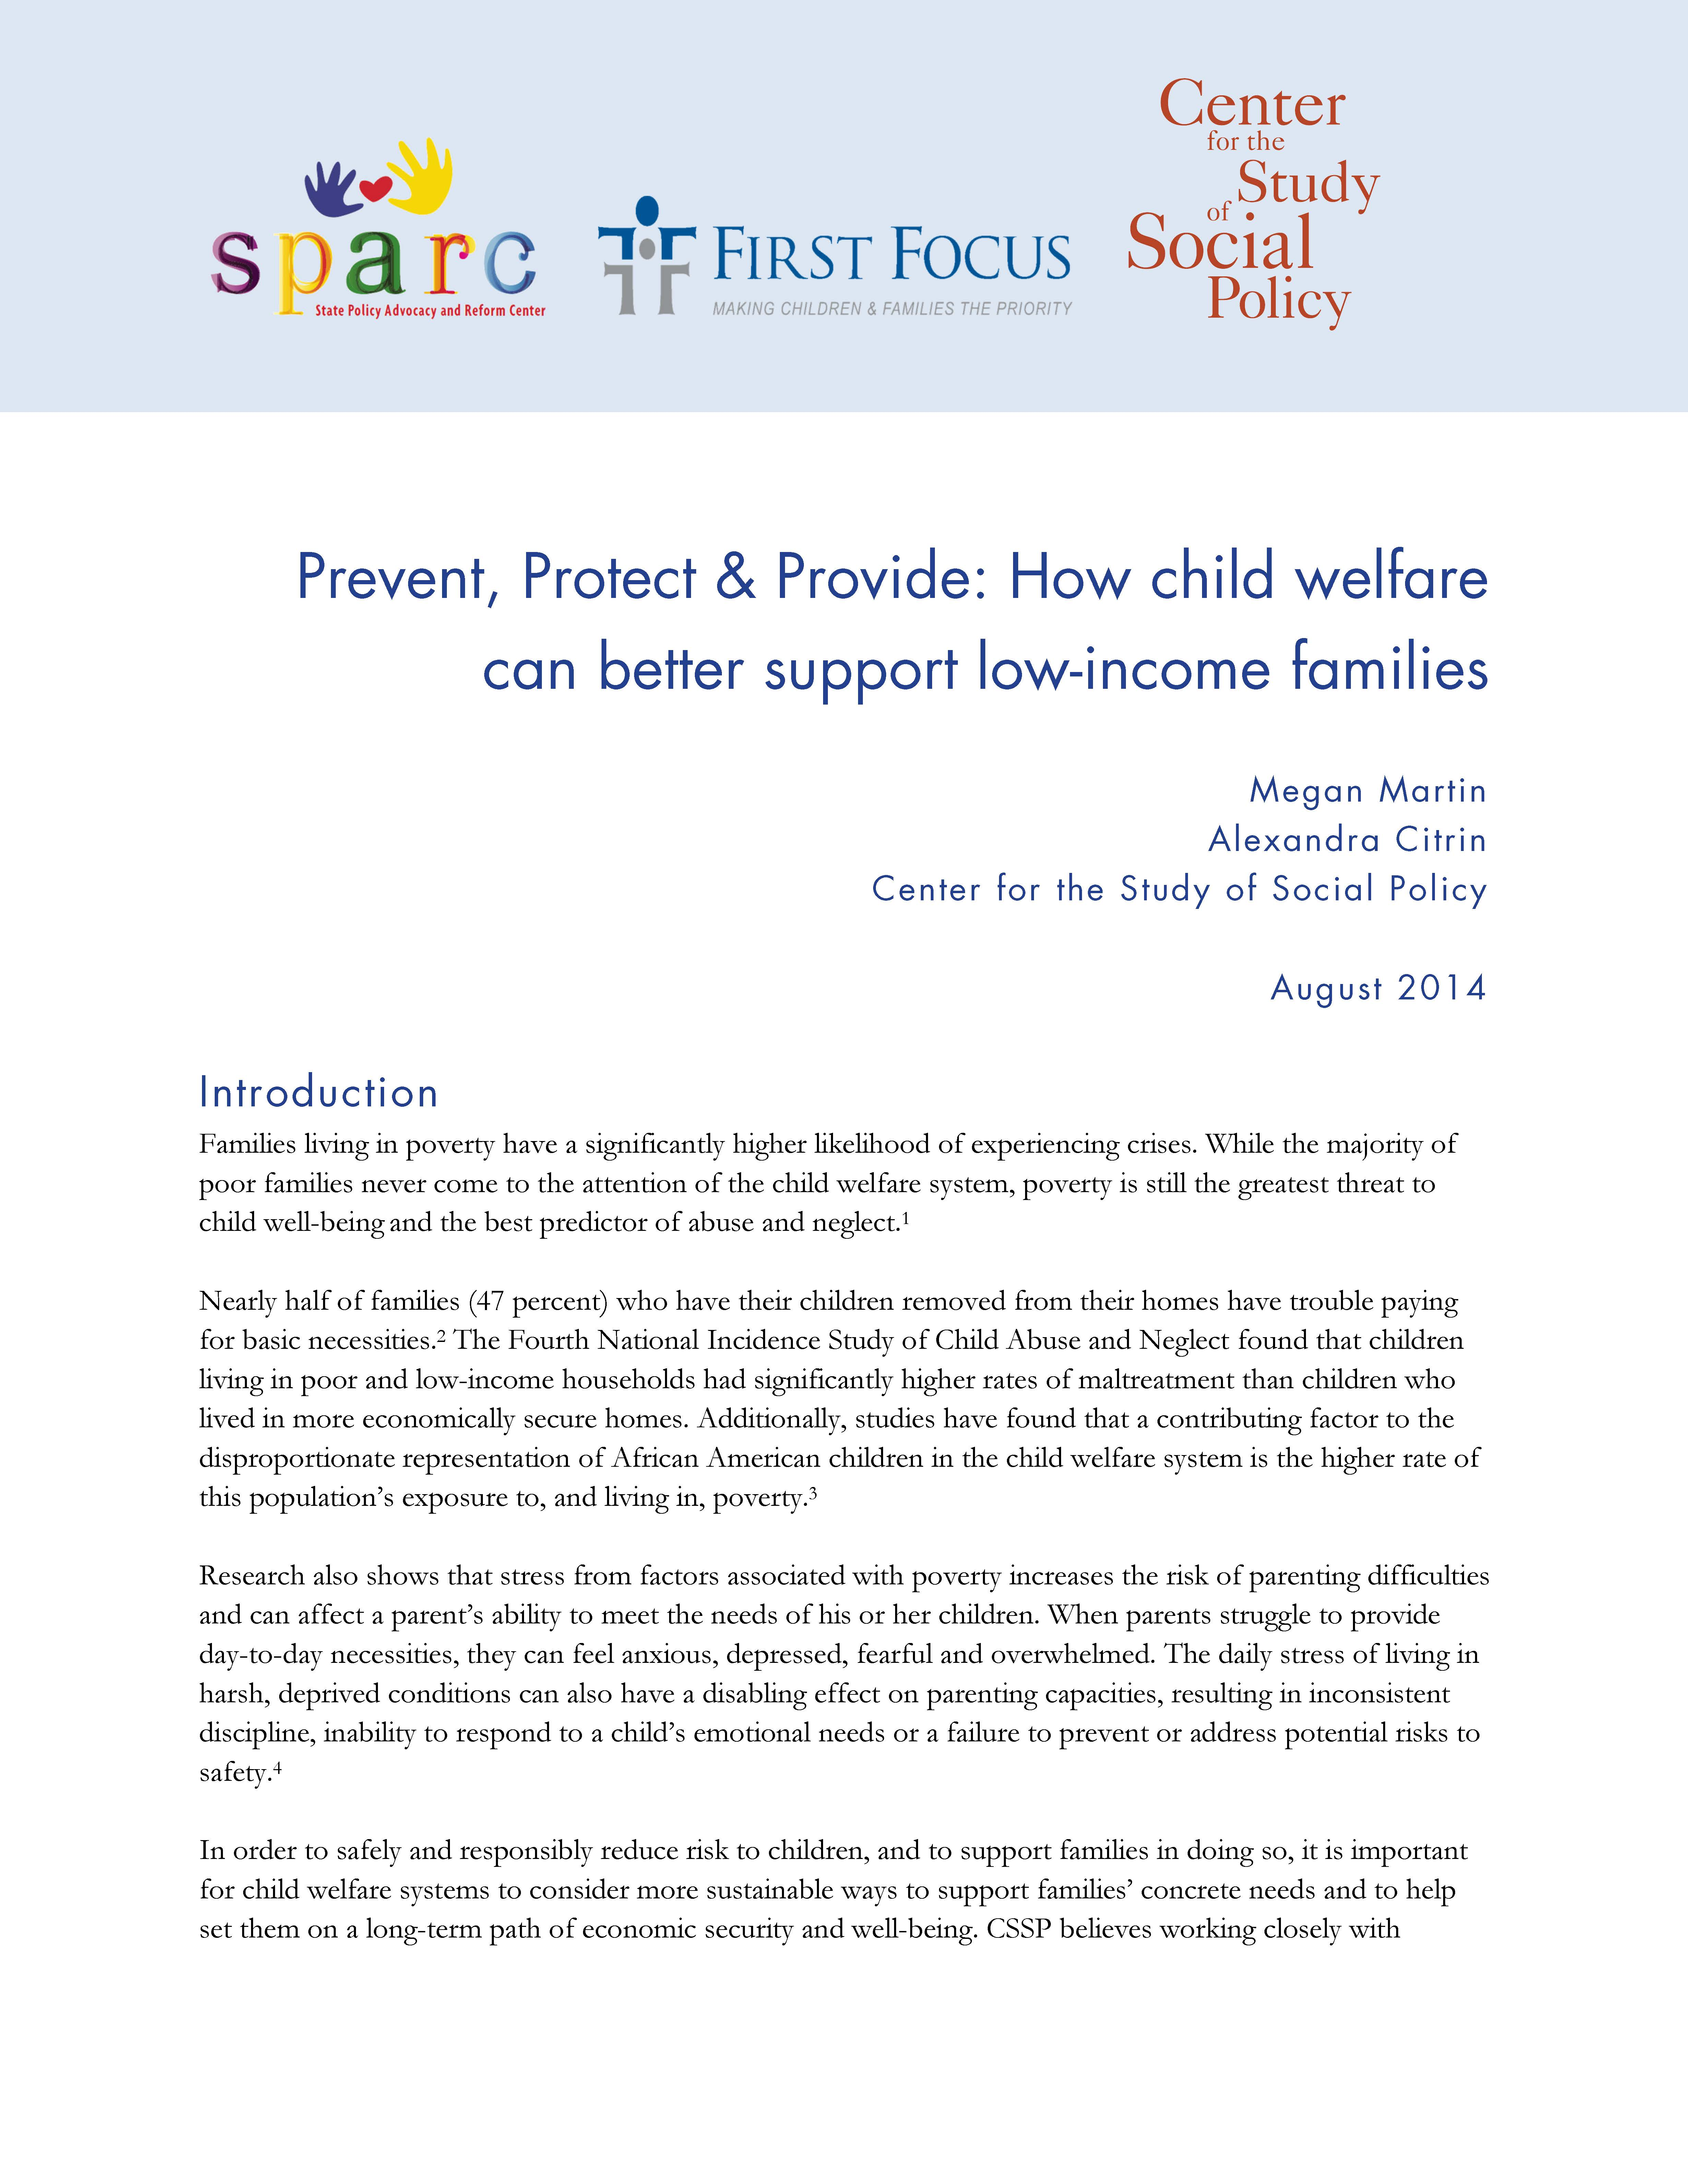 Prevent, Protect & Provide: How child welfare can better support low-income families